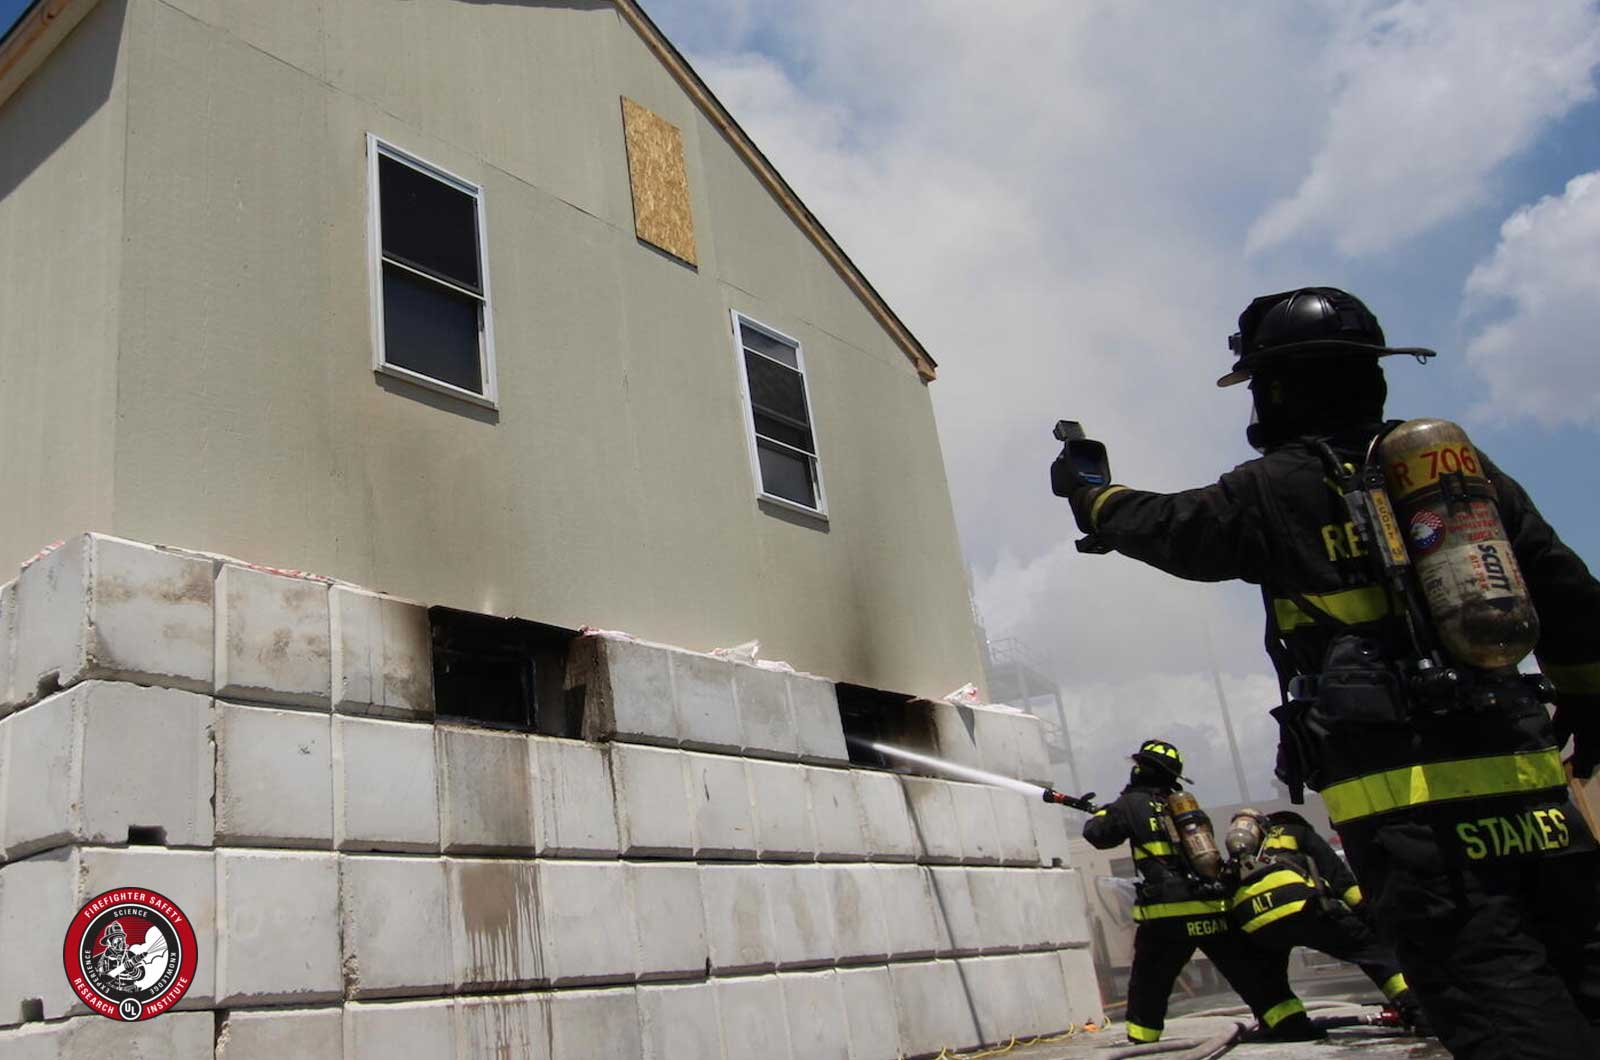 Firefighter with a TIC on exterior of structure while firefighter puts hose stream through opening